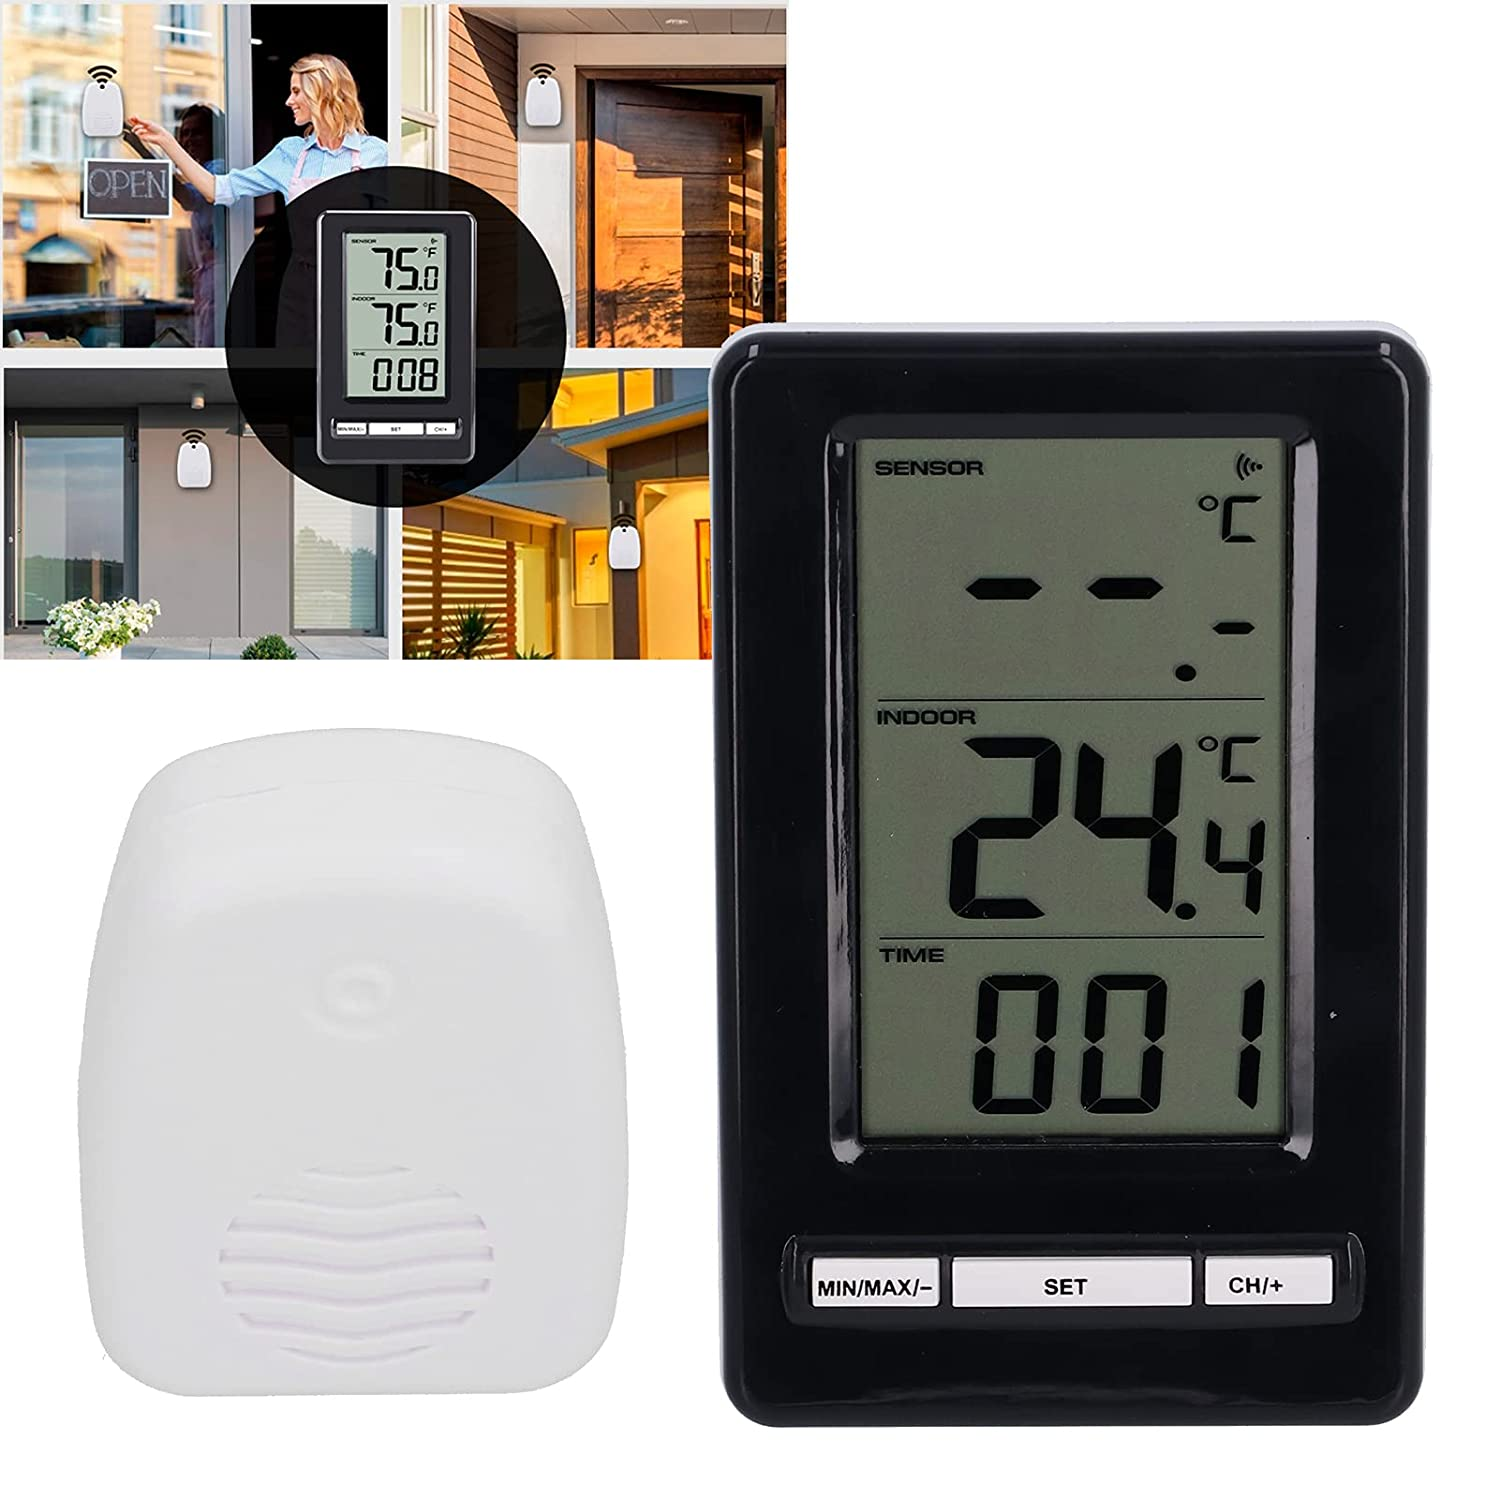 Temperature Gauge Portable Max 73% OFF Offices for Incubators New arrival